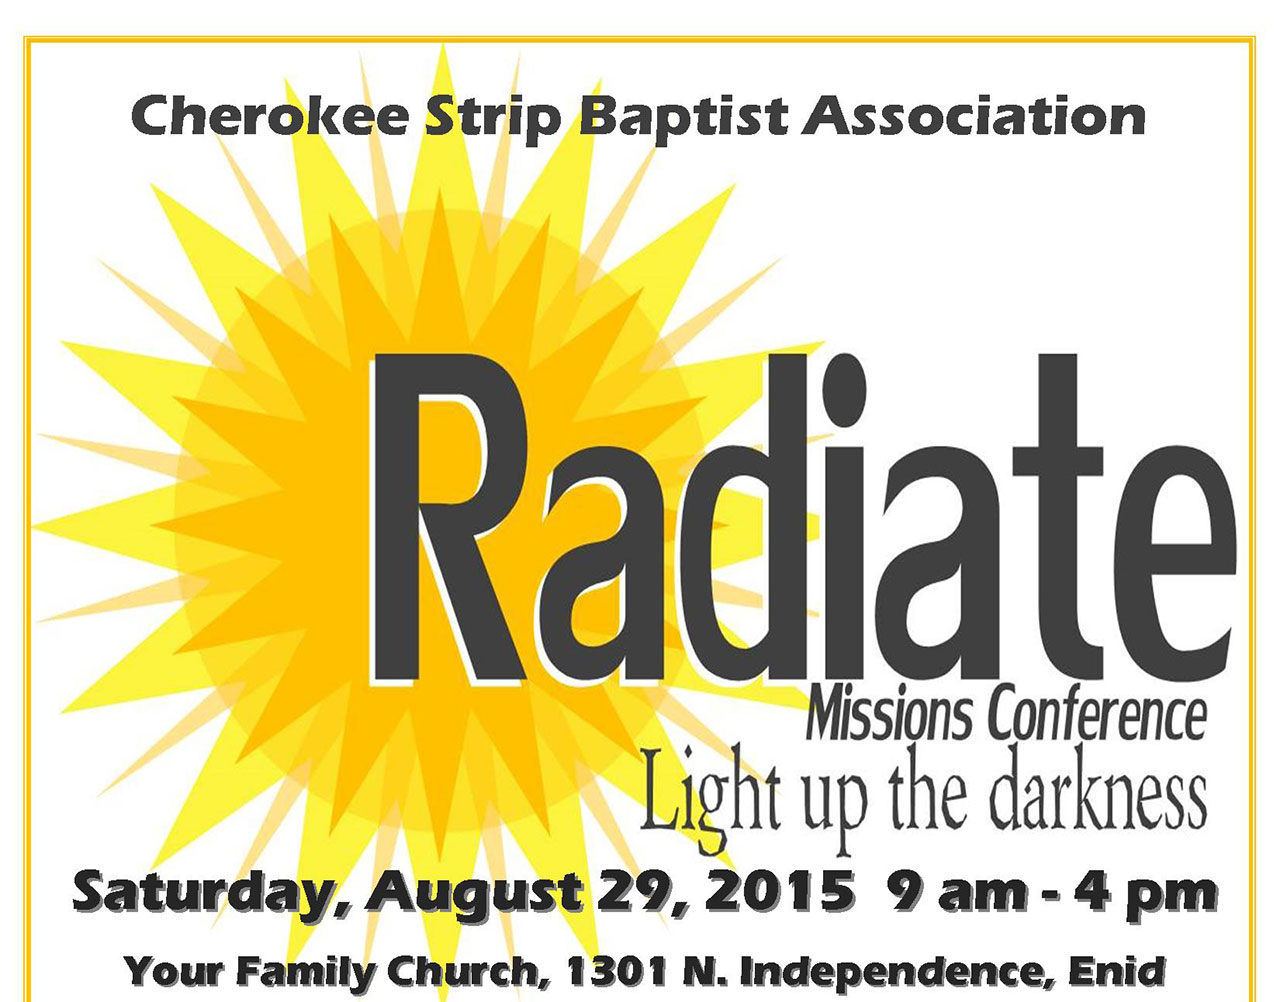 Radiate: Light Up the Darkness Missions Conference